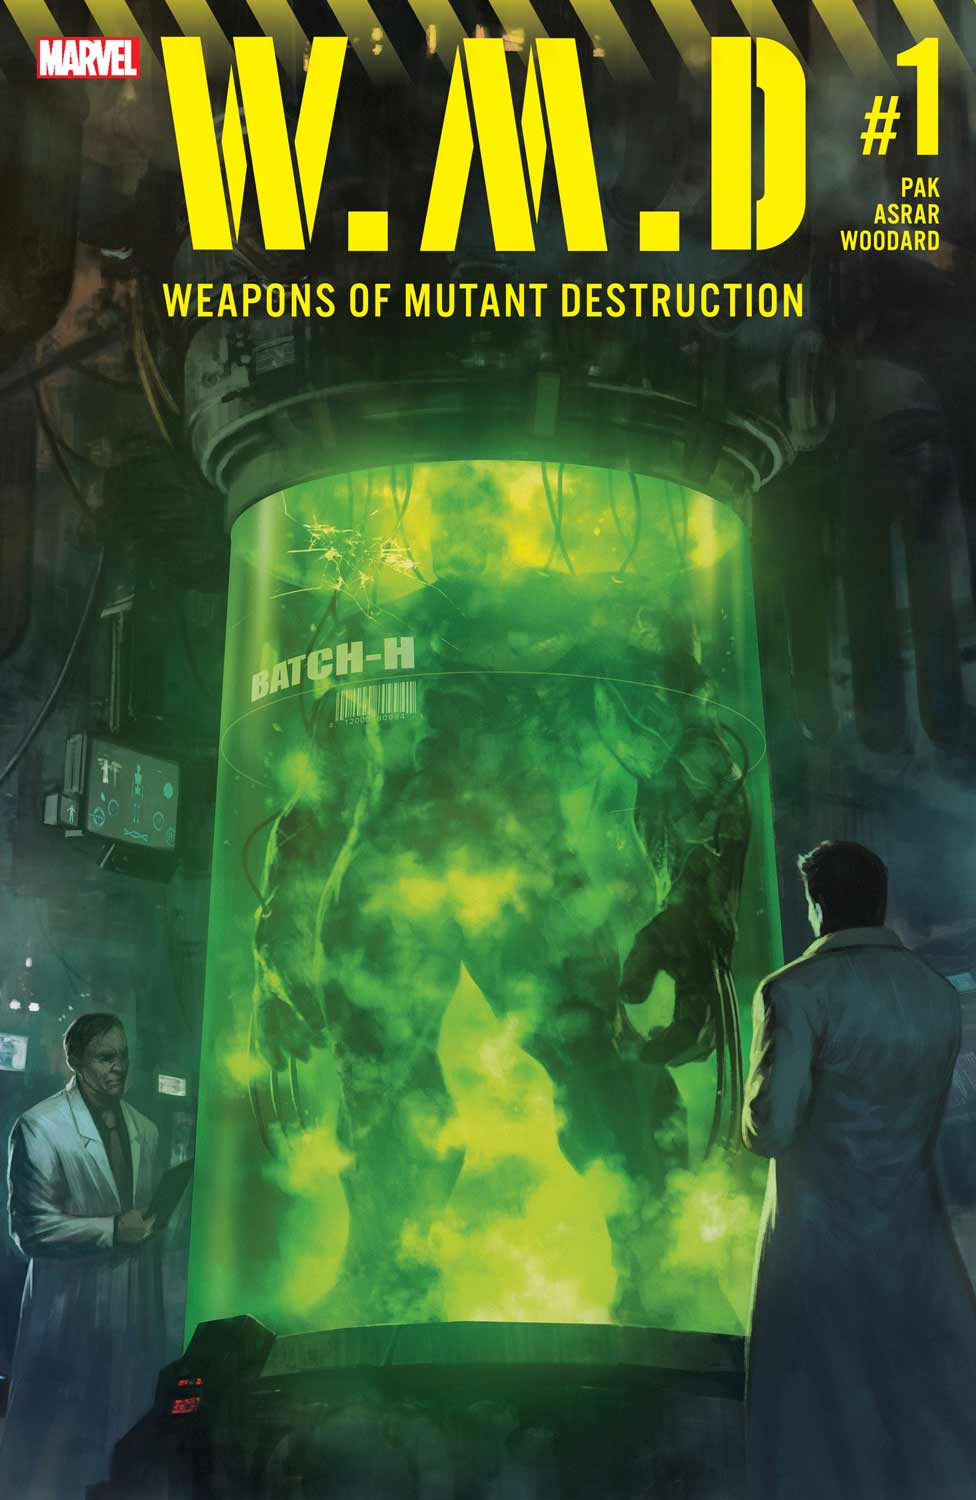 Weapons Of Mutant Destruction First Look Promises Insane Levels Of Action